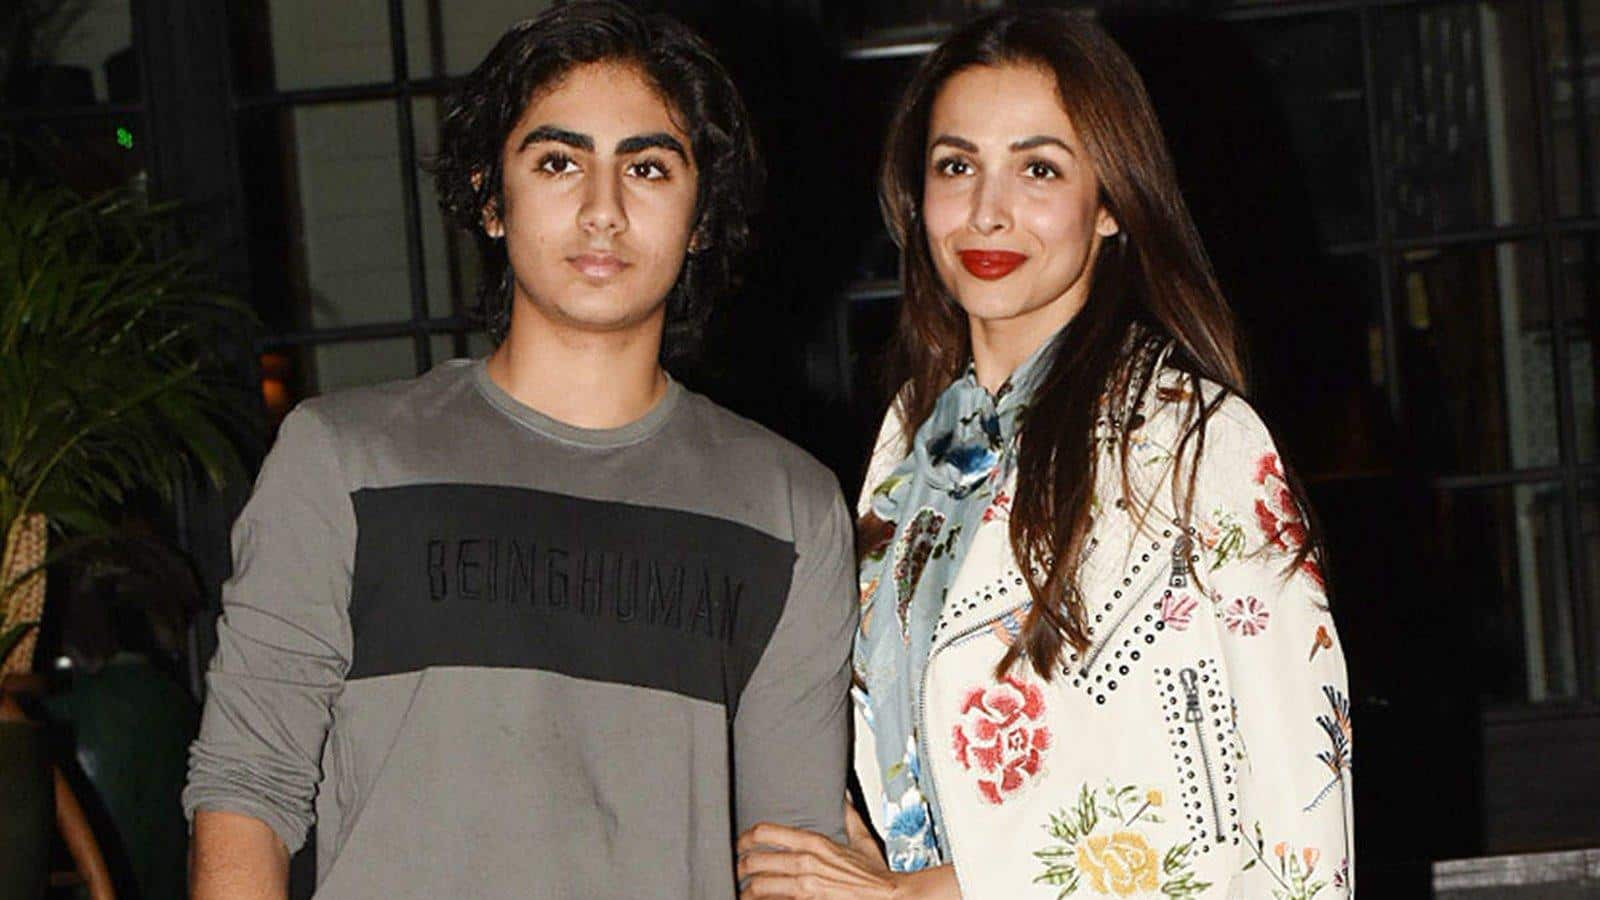 This Is How Malaika Arora's Son Arhan Reacted To Her Relationship With Arjun Kapoor